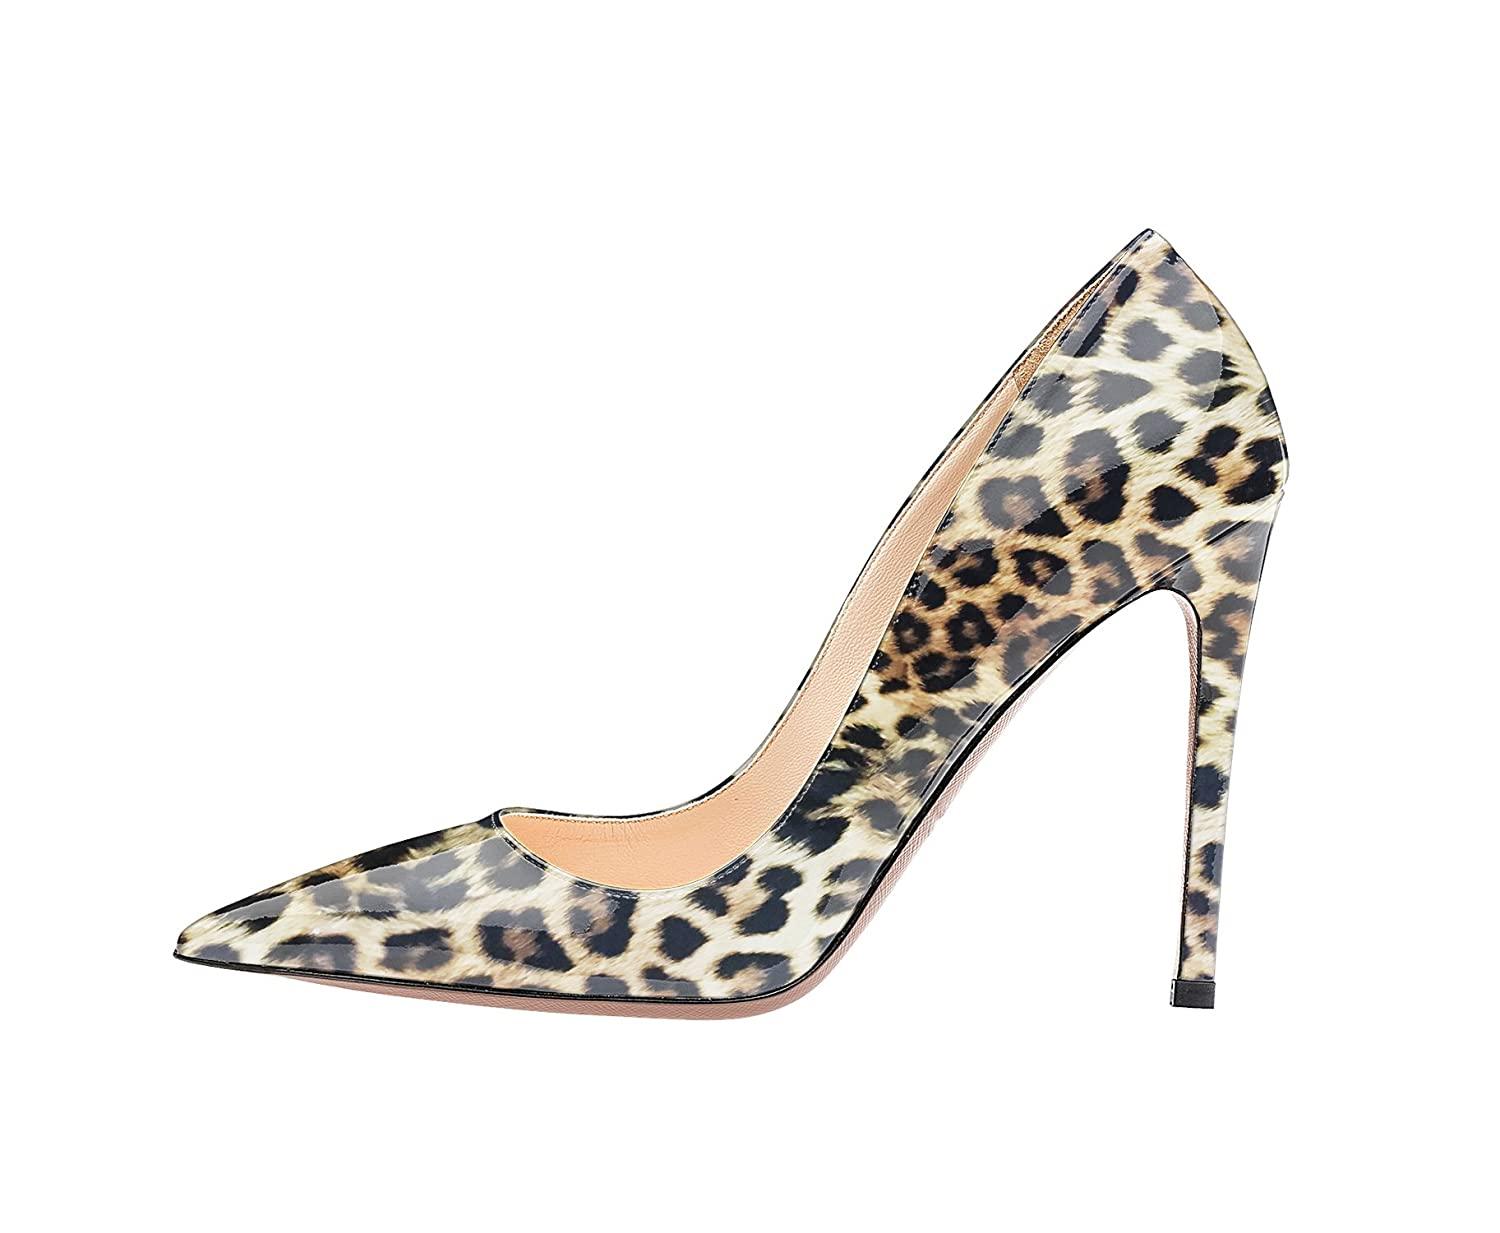 SexyPrey Women's Pointy Toe Stiletto Shoes Formal Office Evening Pumps B074M4BRBR 11.5 B(M) US|Leopard